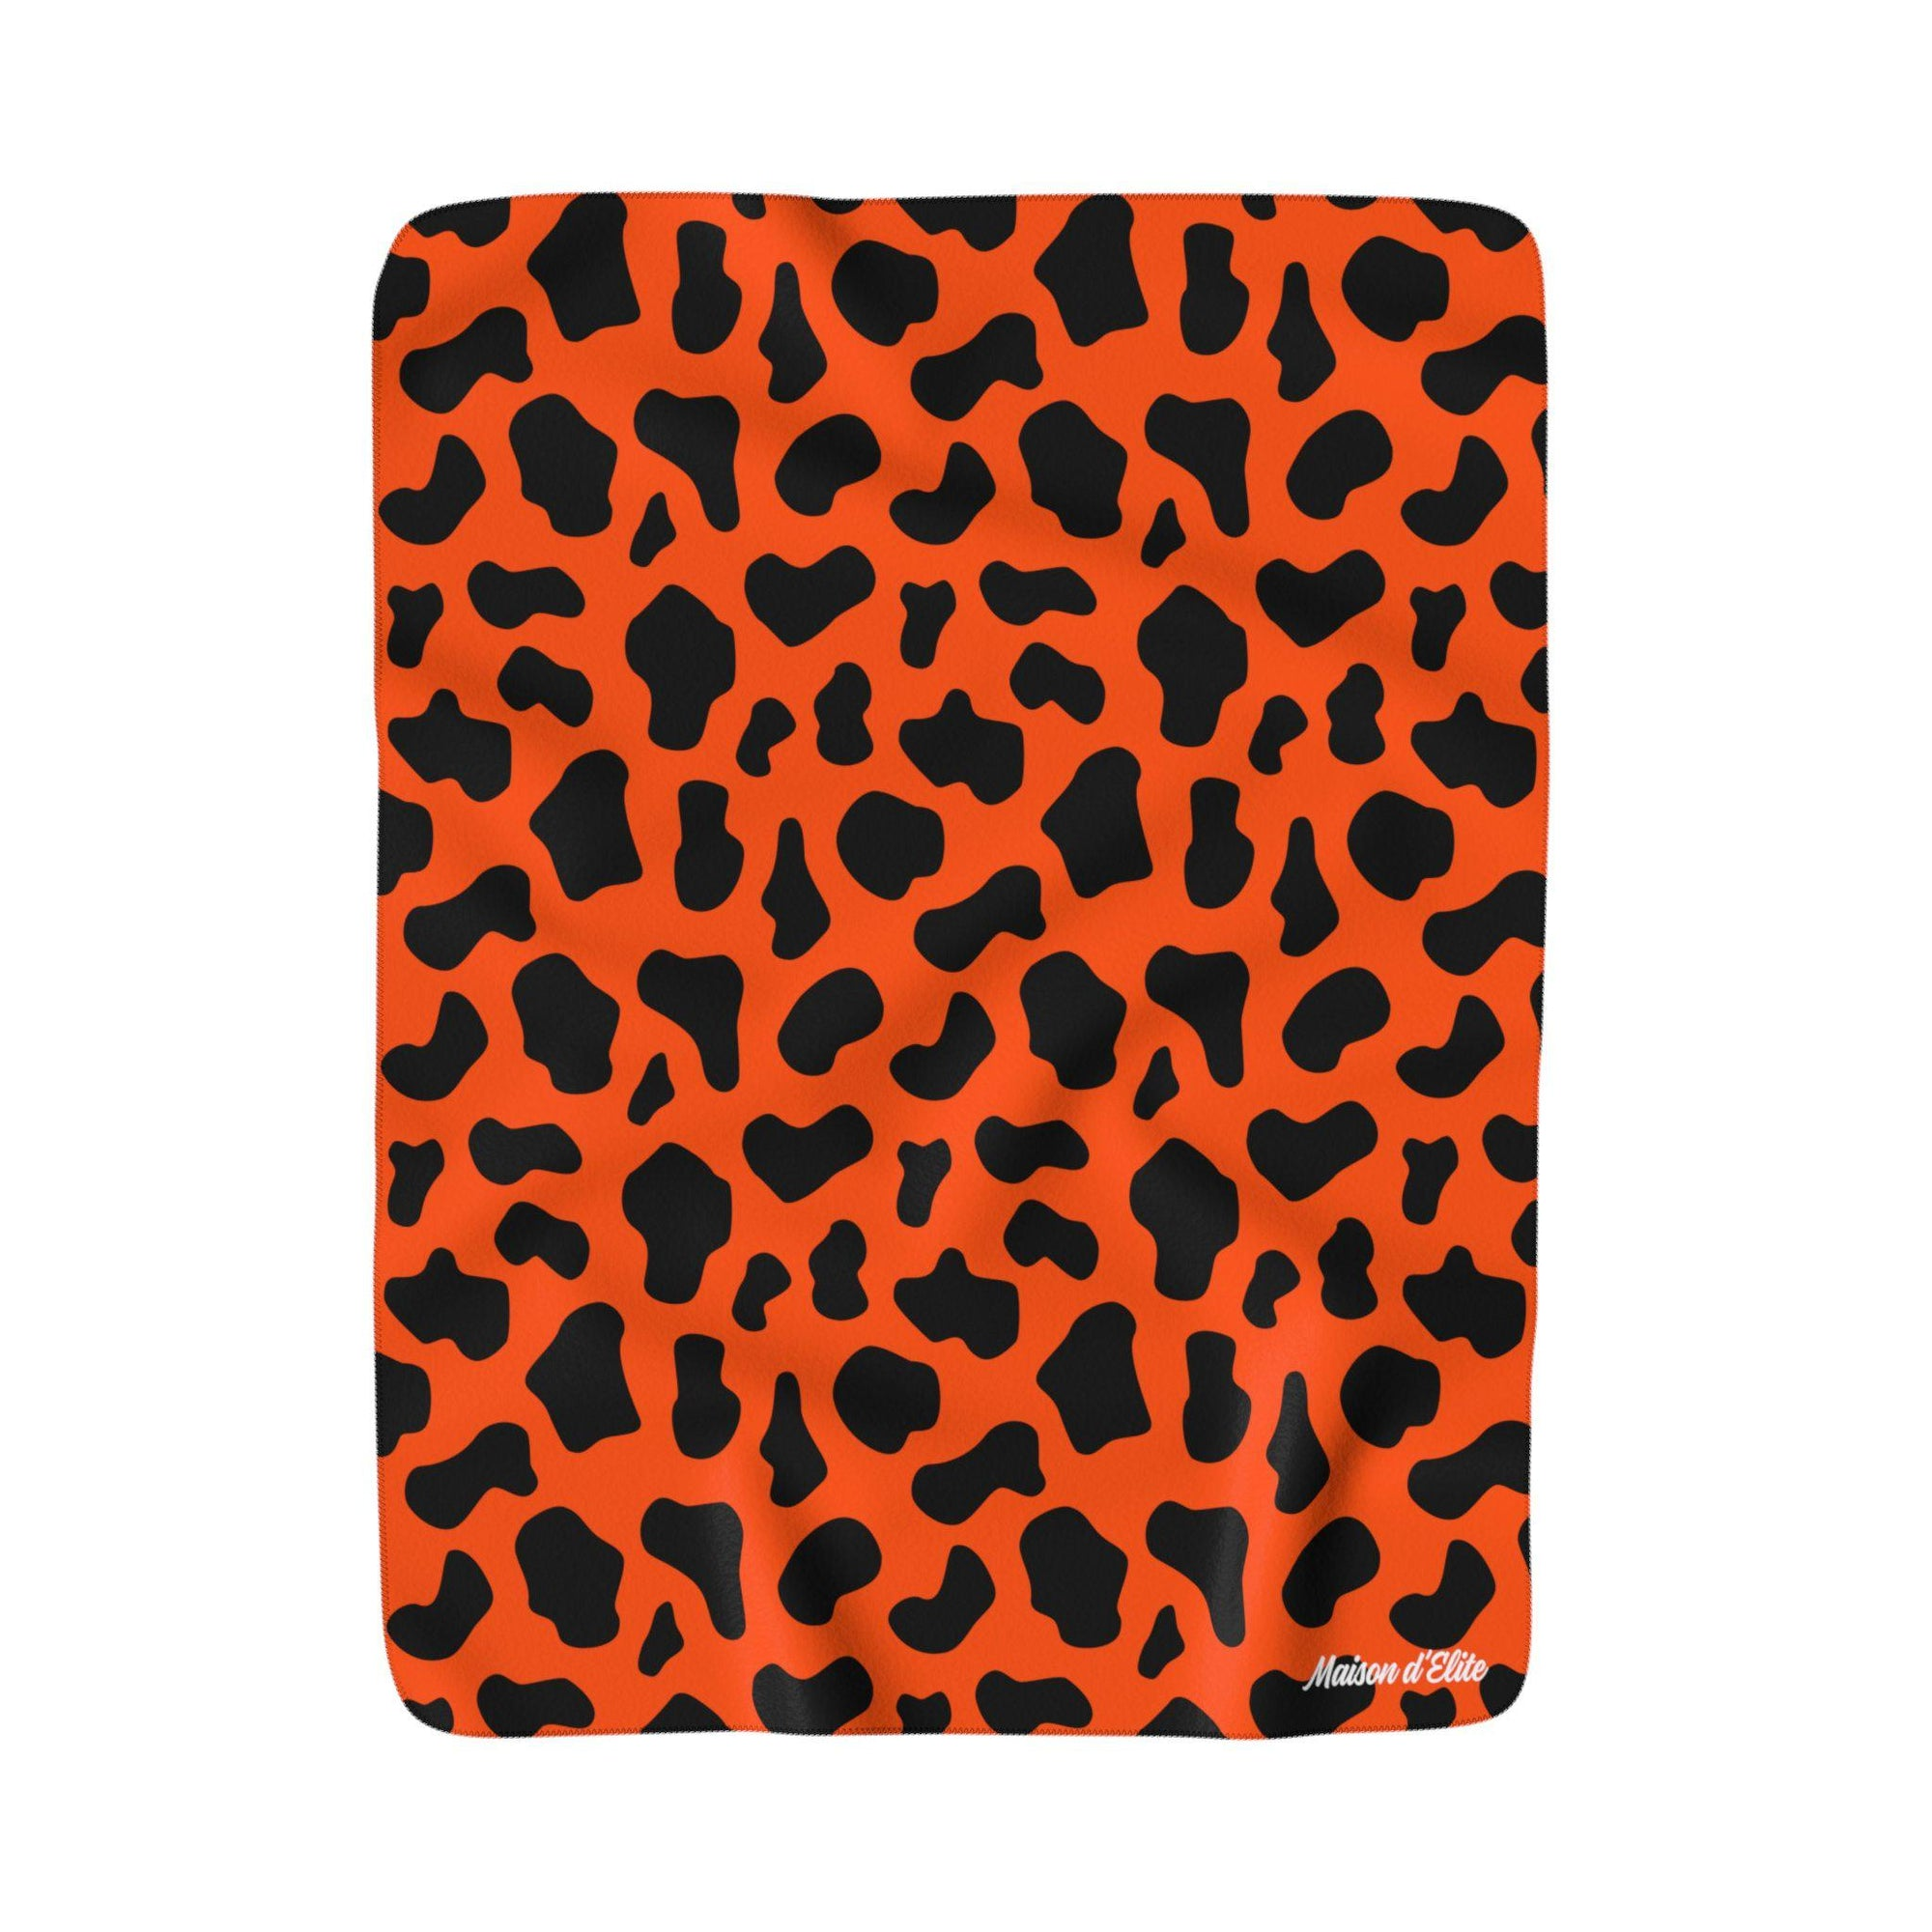 Maison d'Elite Animal print Sherpa Fleece Blanket-Home - Throws & Blankets-Maison d'Elite-50x60-Red Orange-Fleece-Très Elite